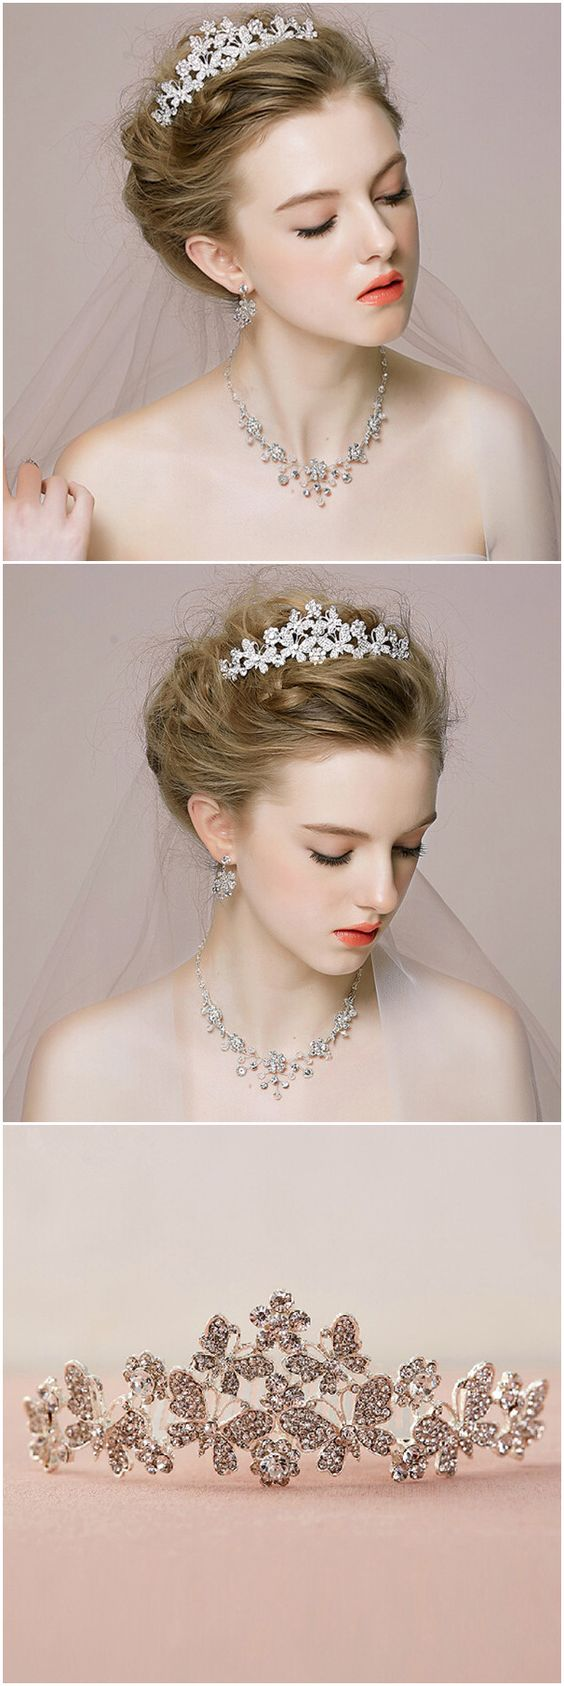 Wedding Accessory-Butterfly Inspired Rhinestone Wedding Tiaras @elegantwinvites: